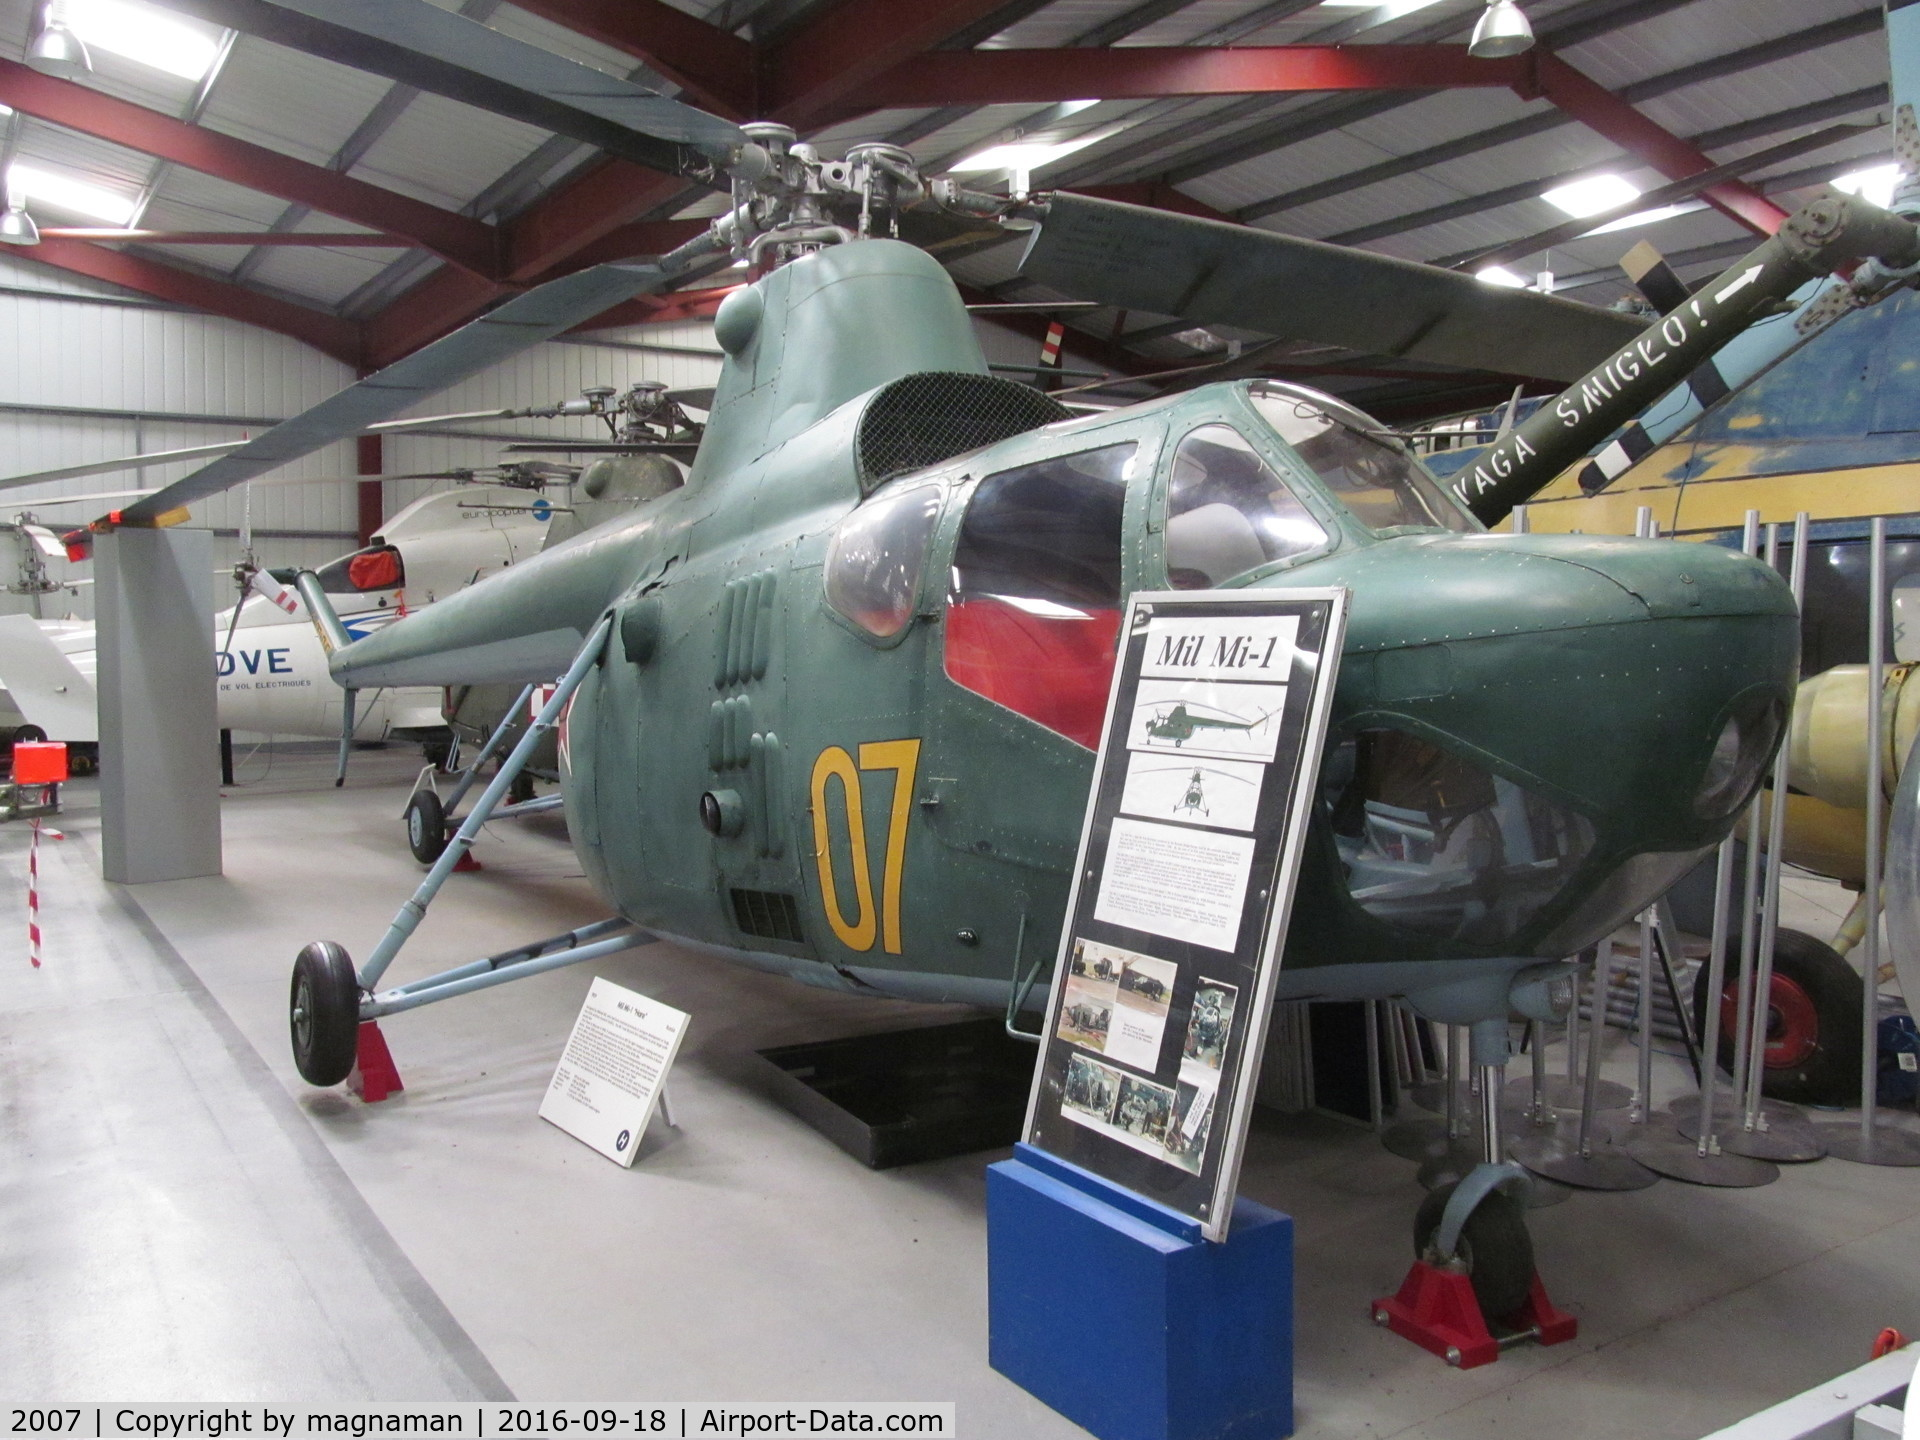 2007, Mil Mi-1 C/N S112007, nice eastern Europe contingent at this museum